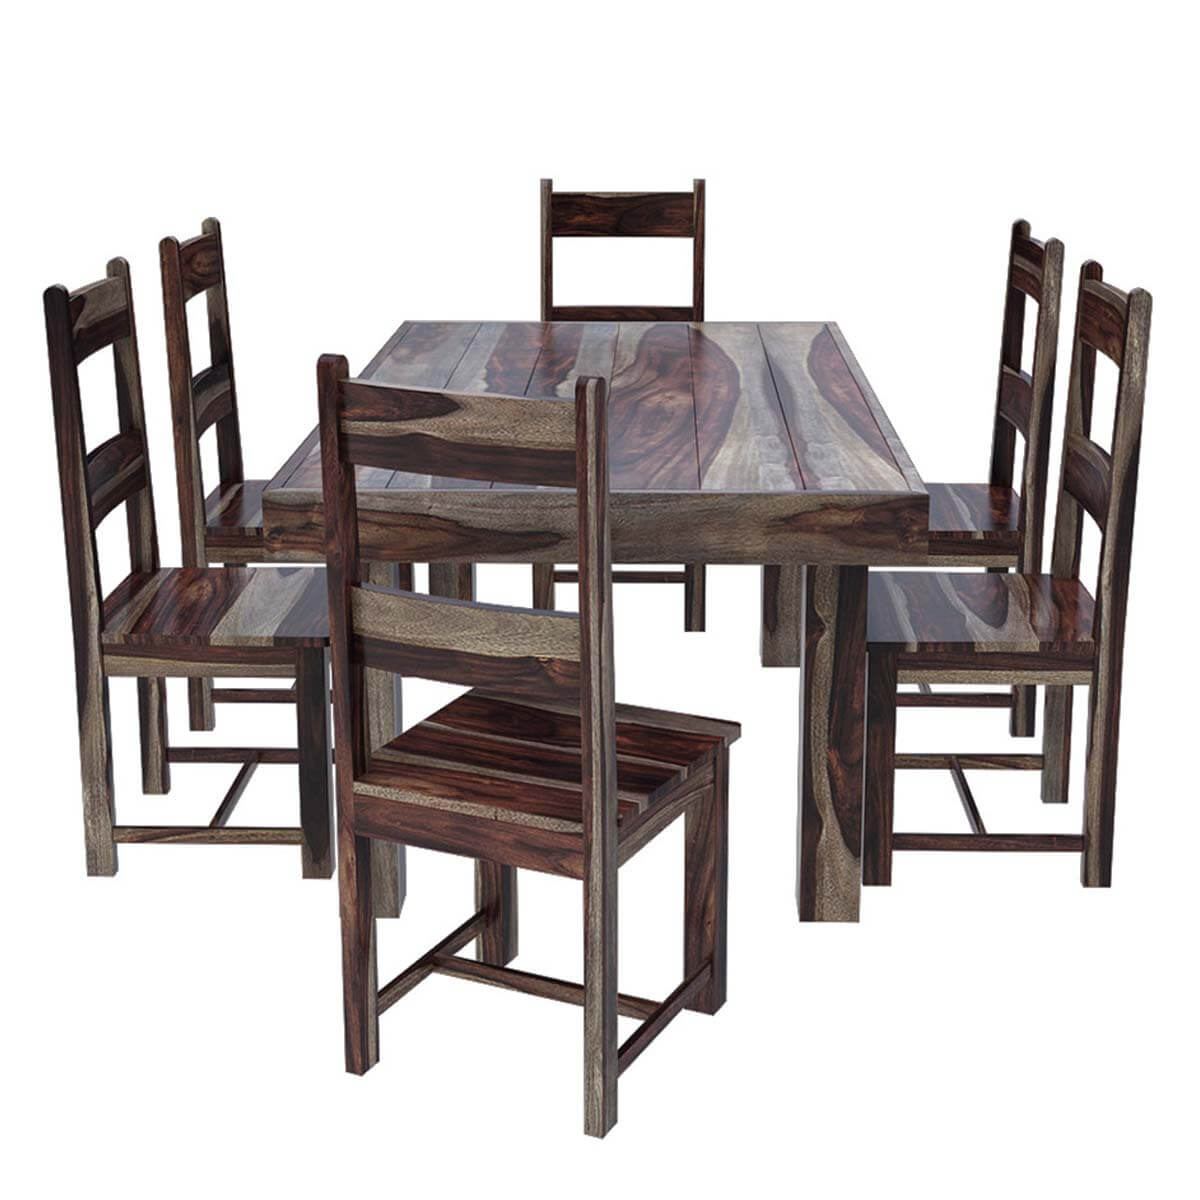 8 Piece Dining Room Sets: Frisco Modern Handcrafted Solid Wood 8 Piece Dining Room Set